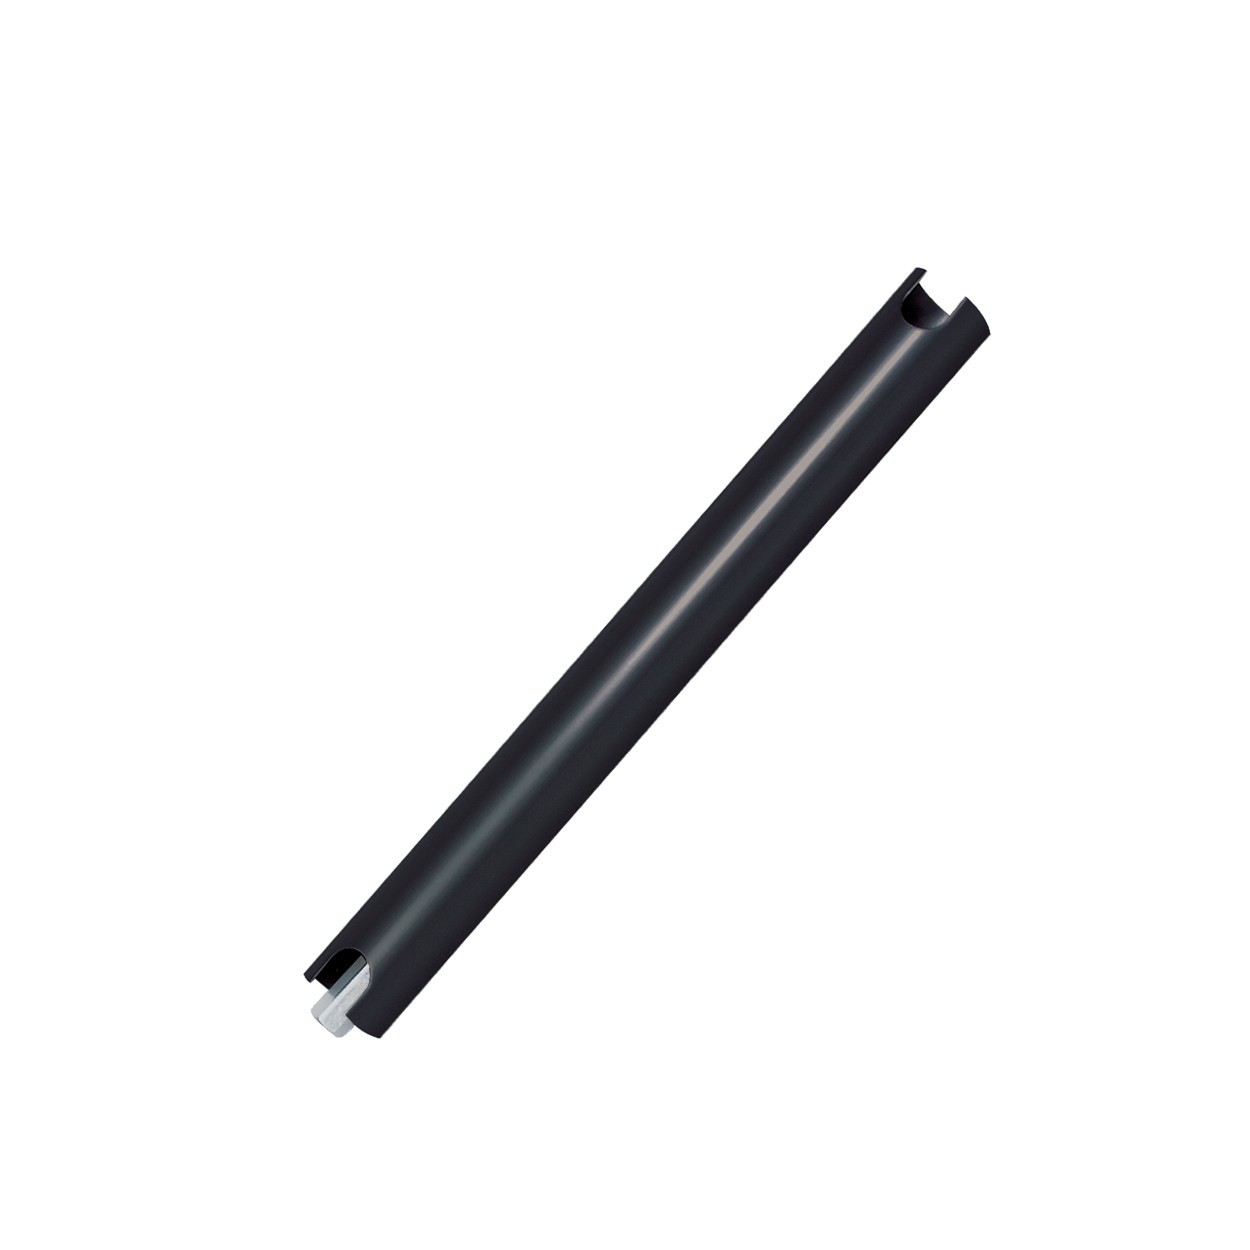 EXTENSOR HI POINT BLACK 400MM